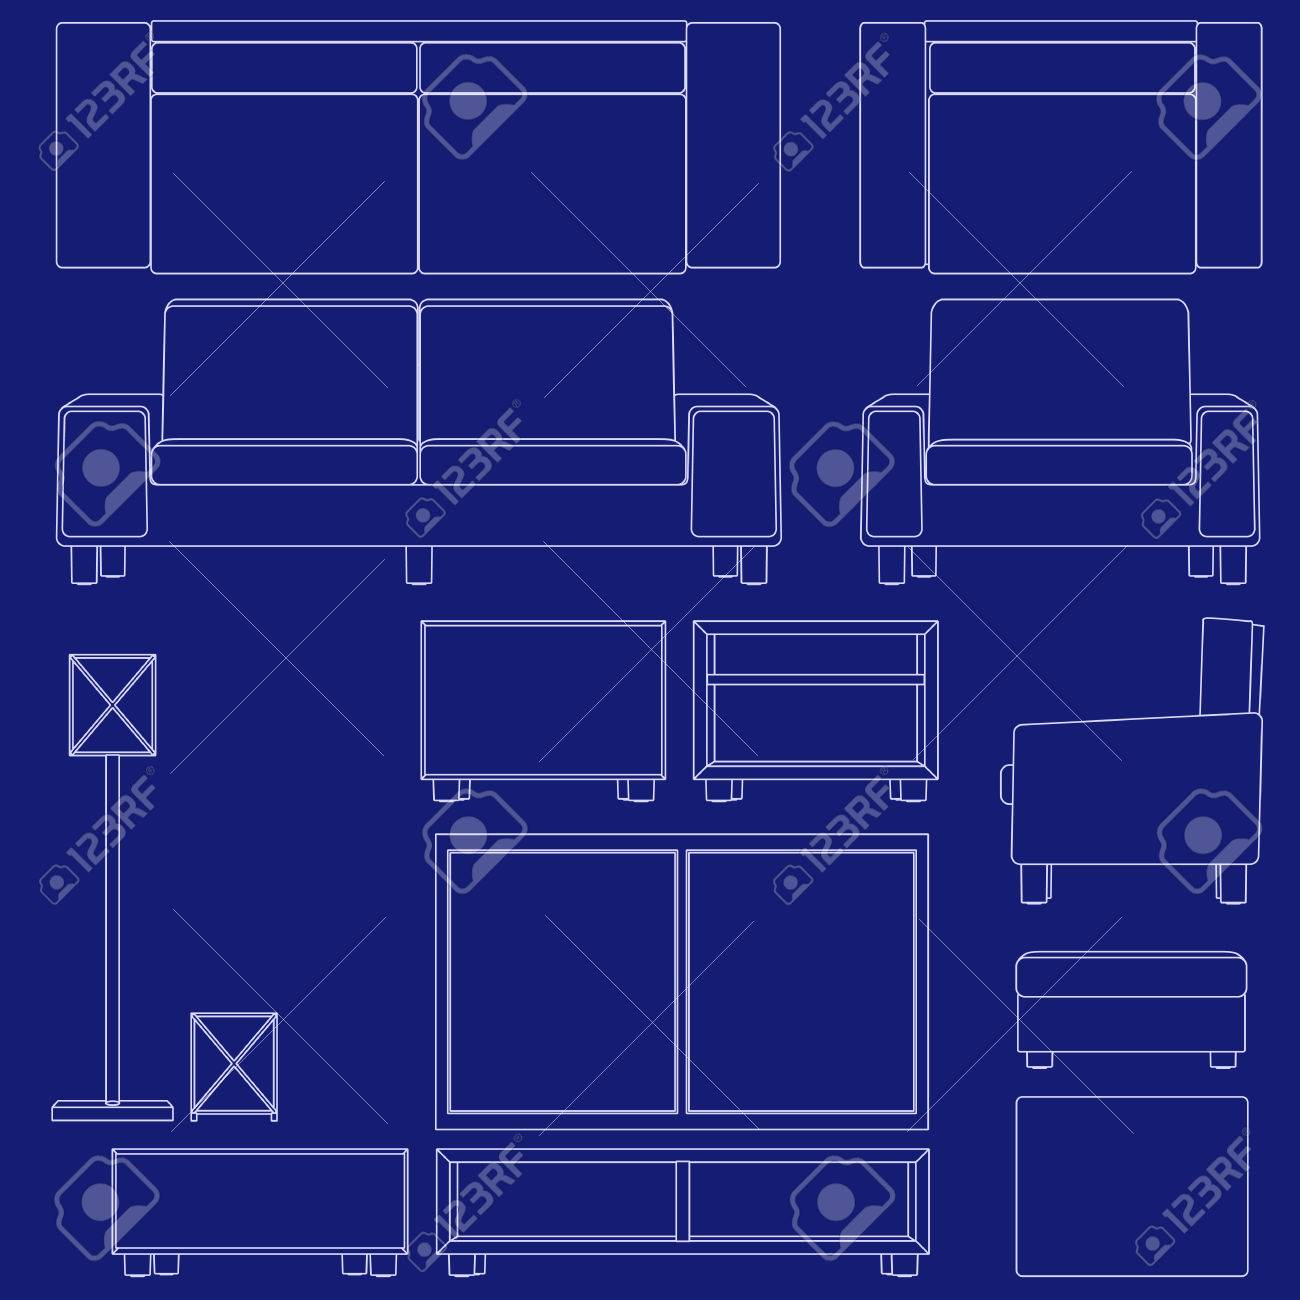 Blueprint living room furniture royalty free cliparts vectors blueprint living room furniture stock vector 5663422 malvernweather Choice Image